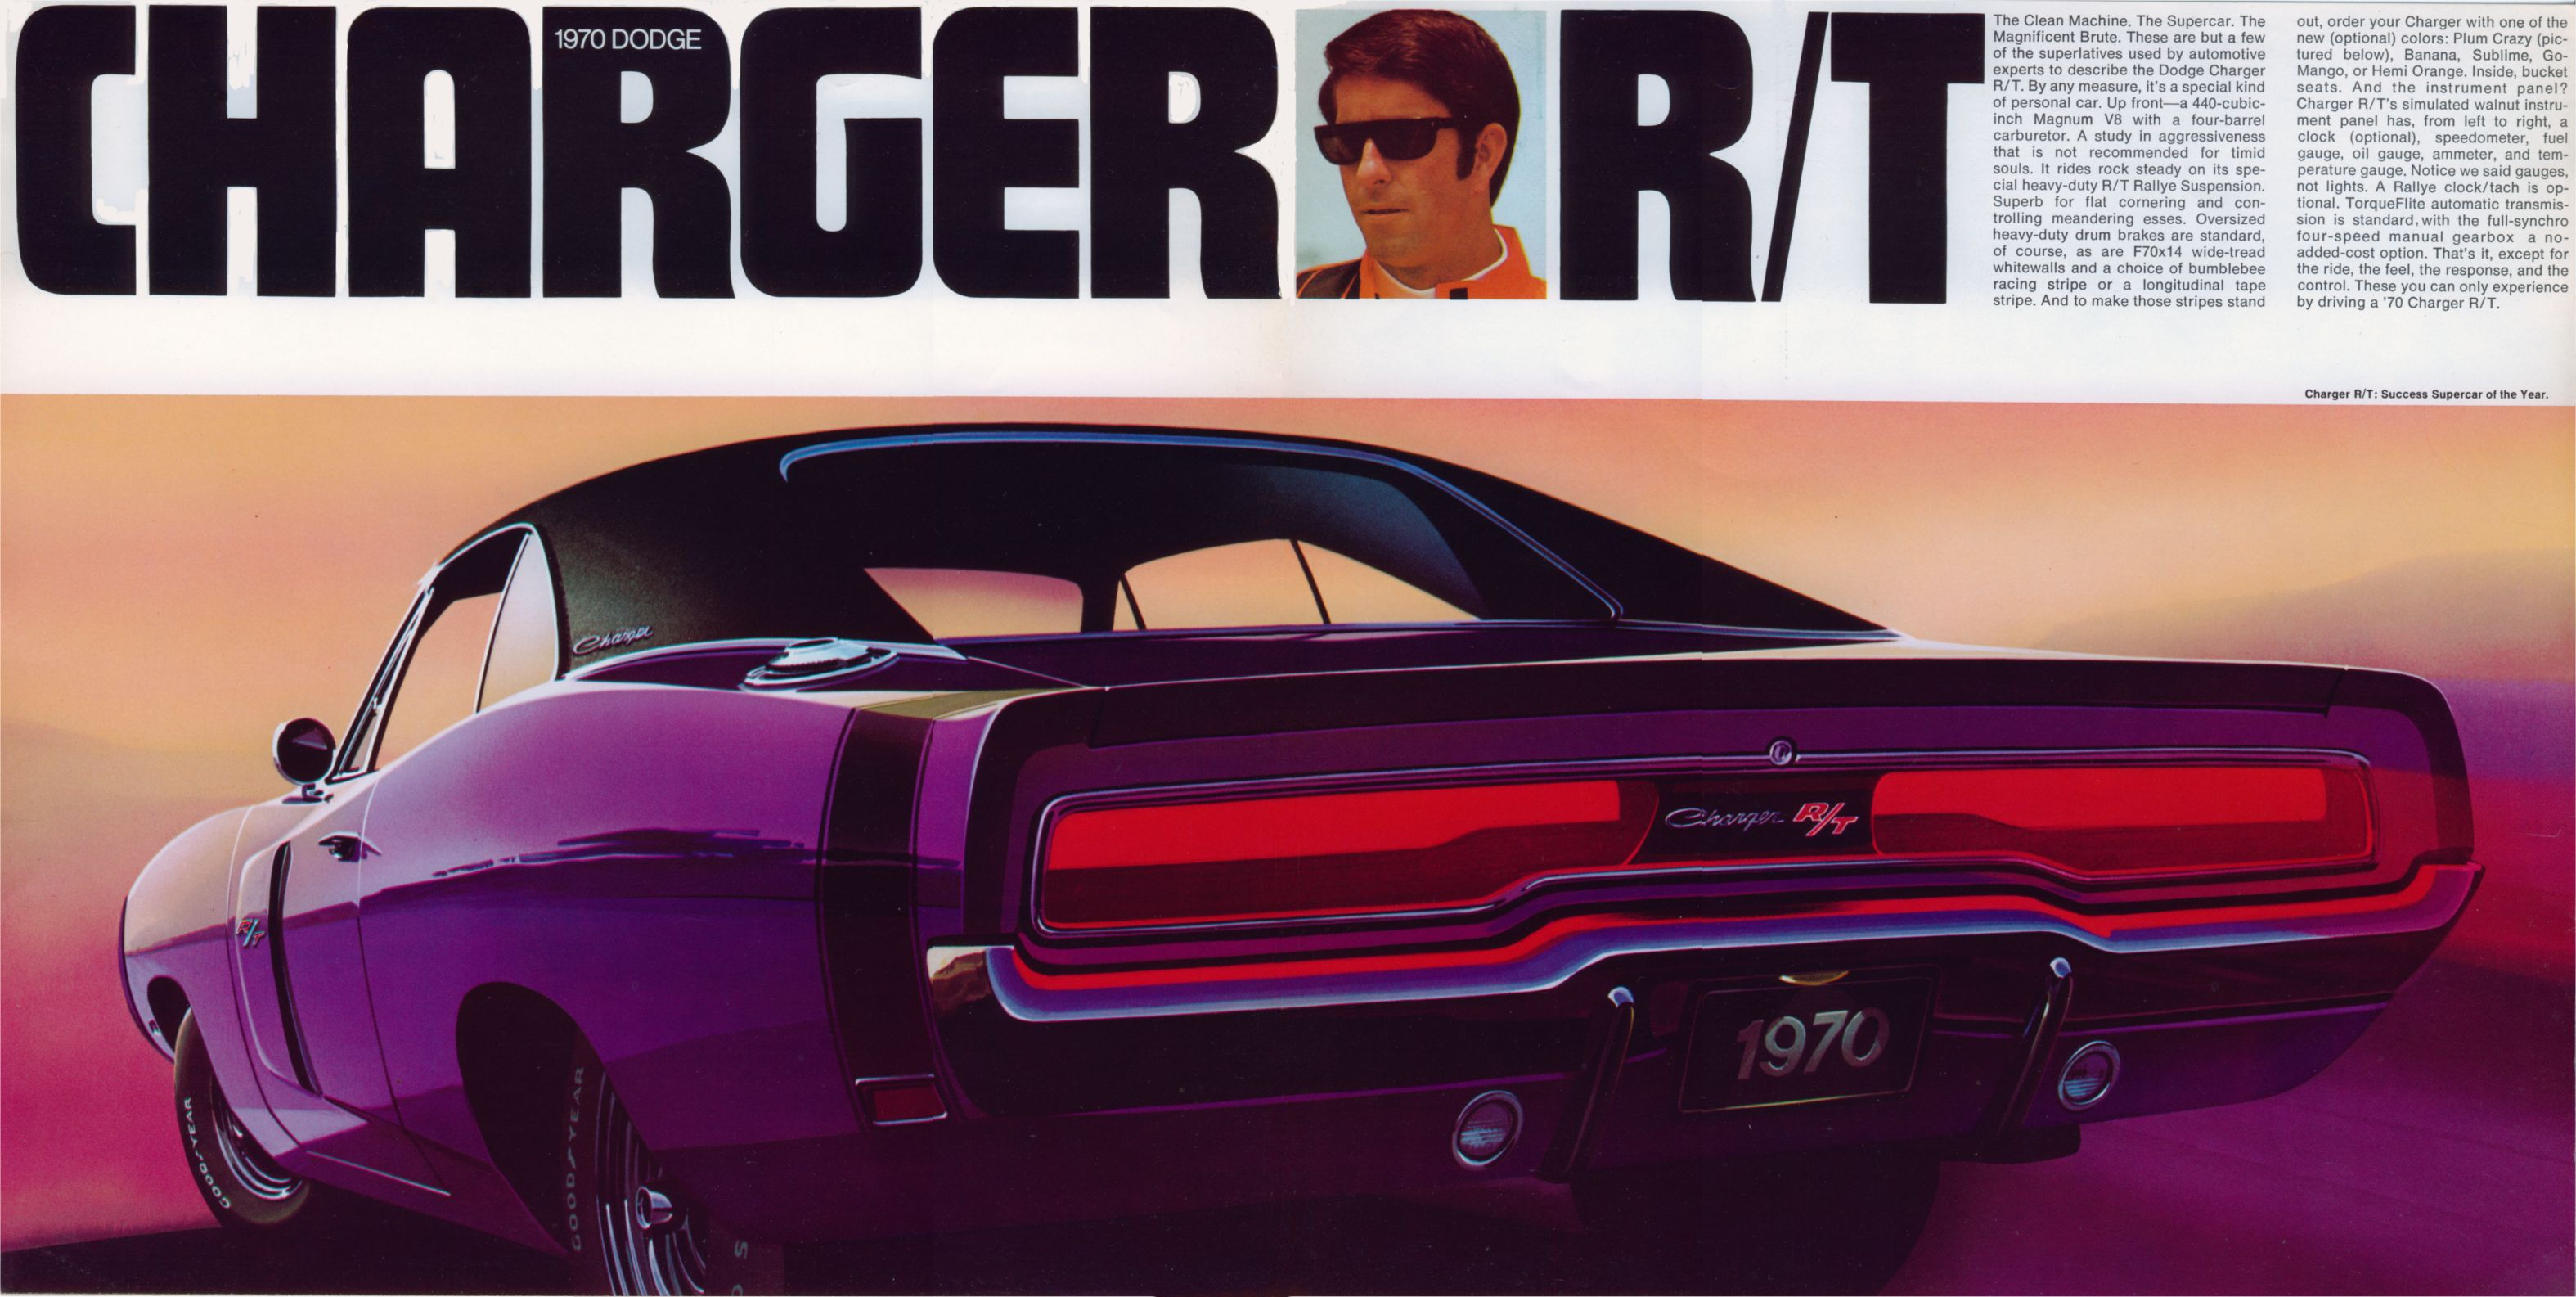 Vintage dodge charger ad mopar muscle plum crazy